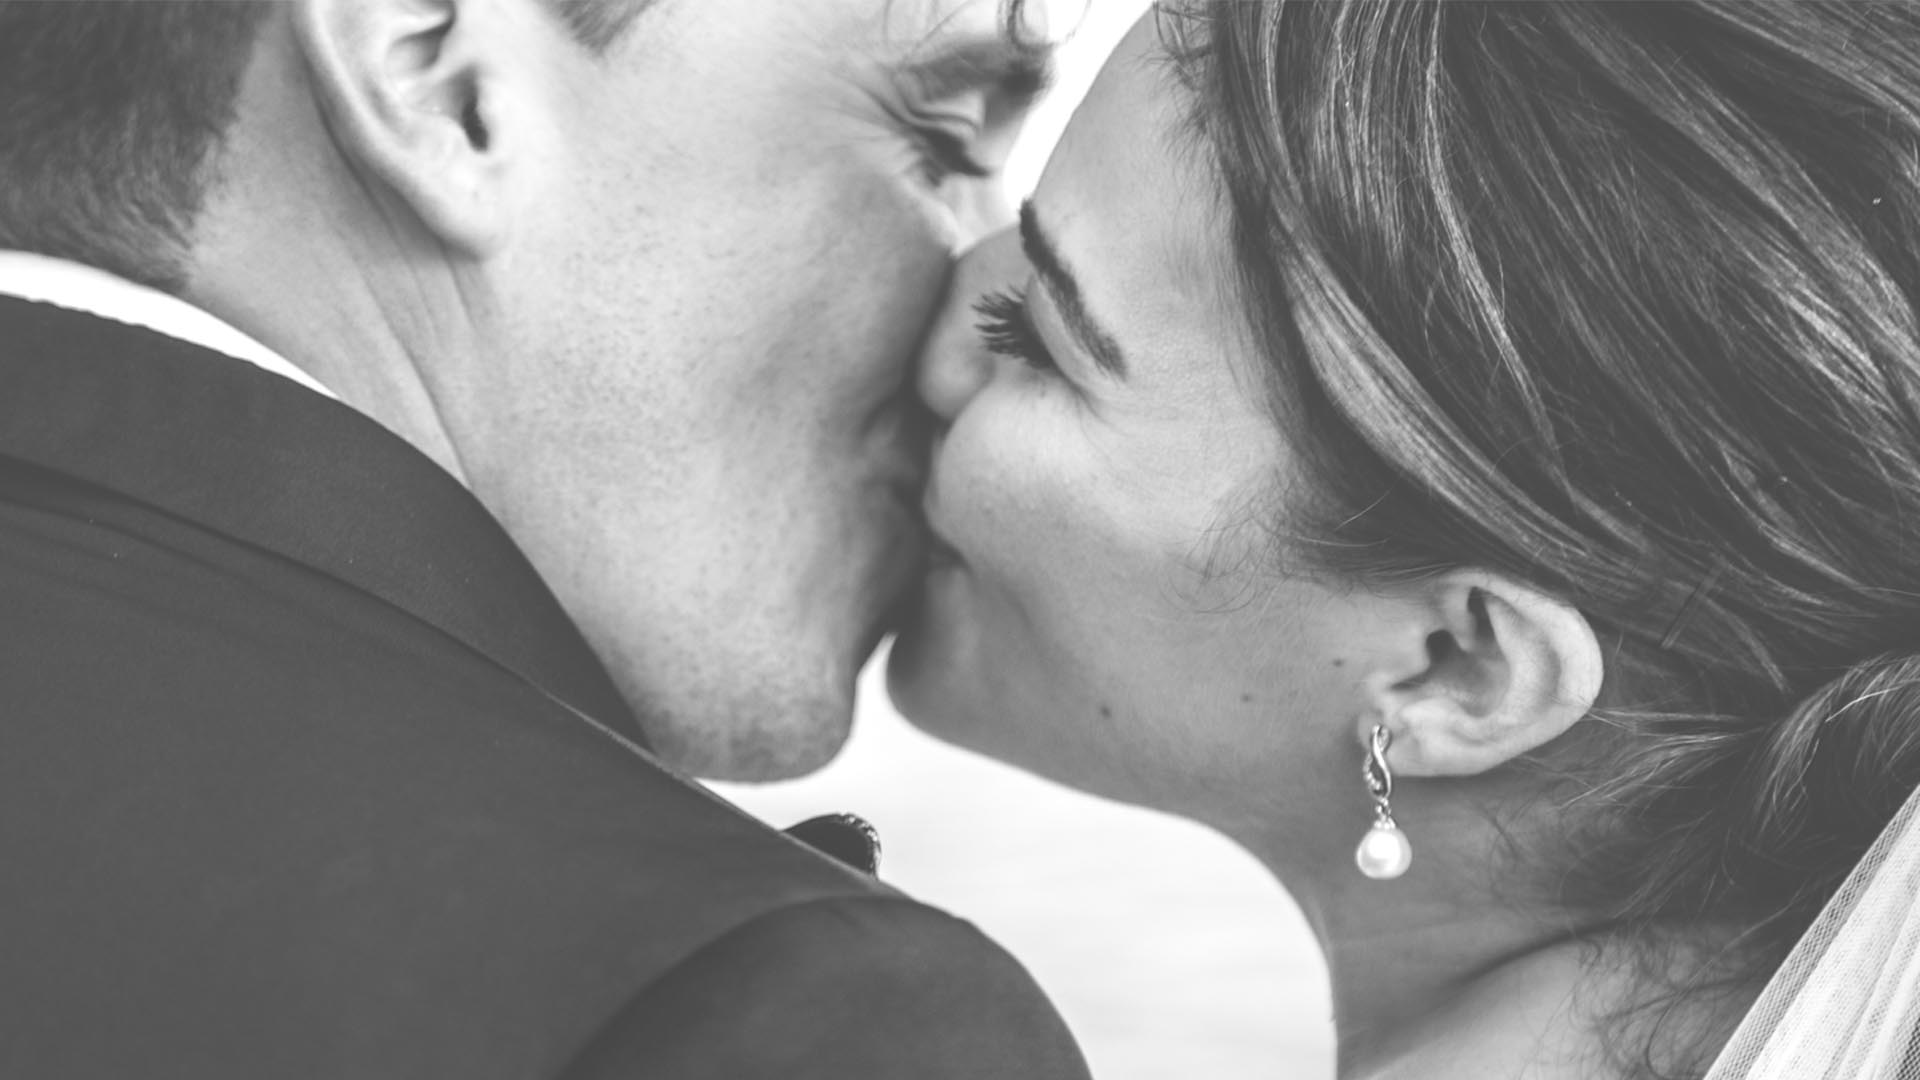 kiss in black and white